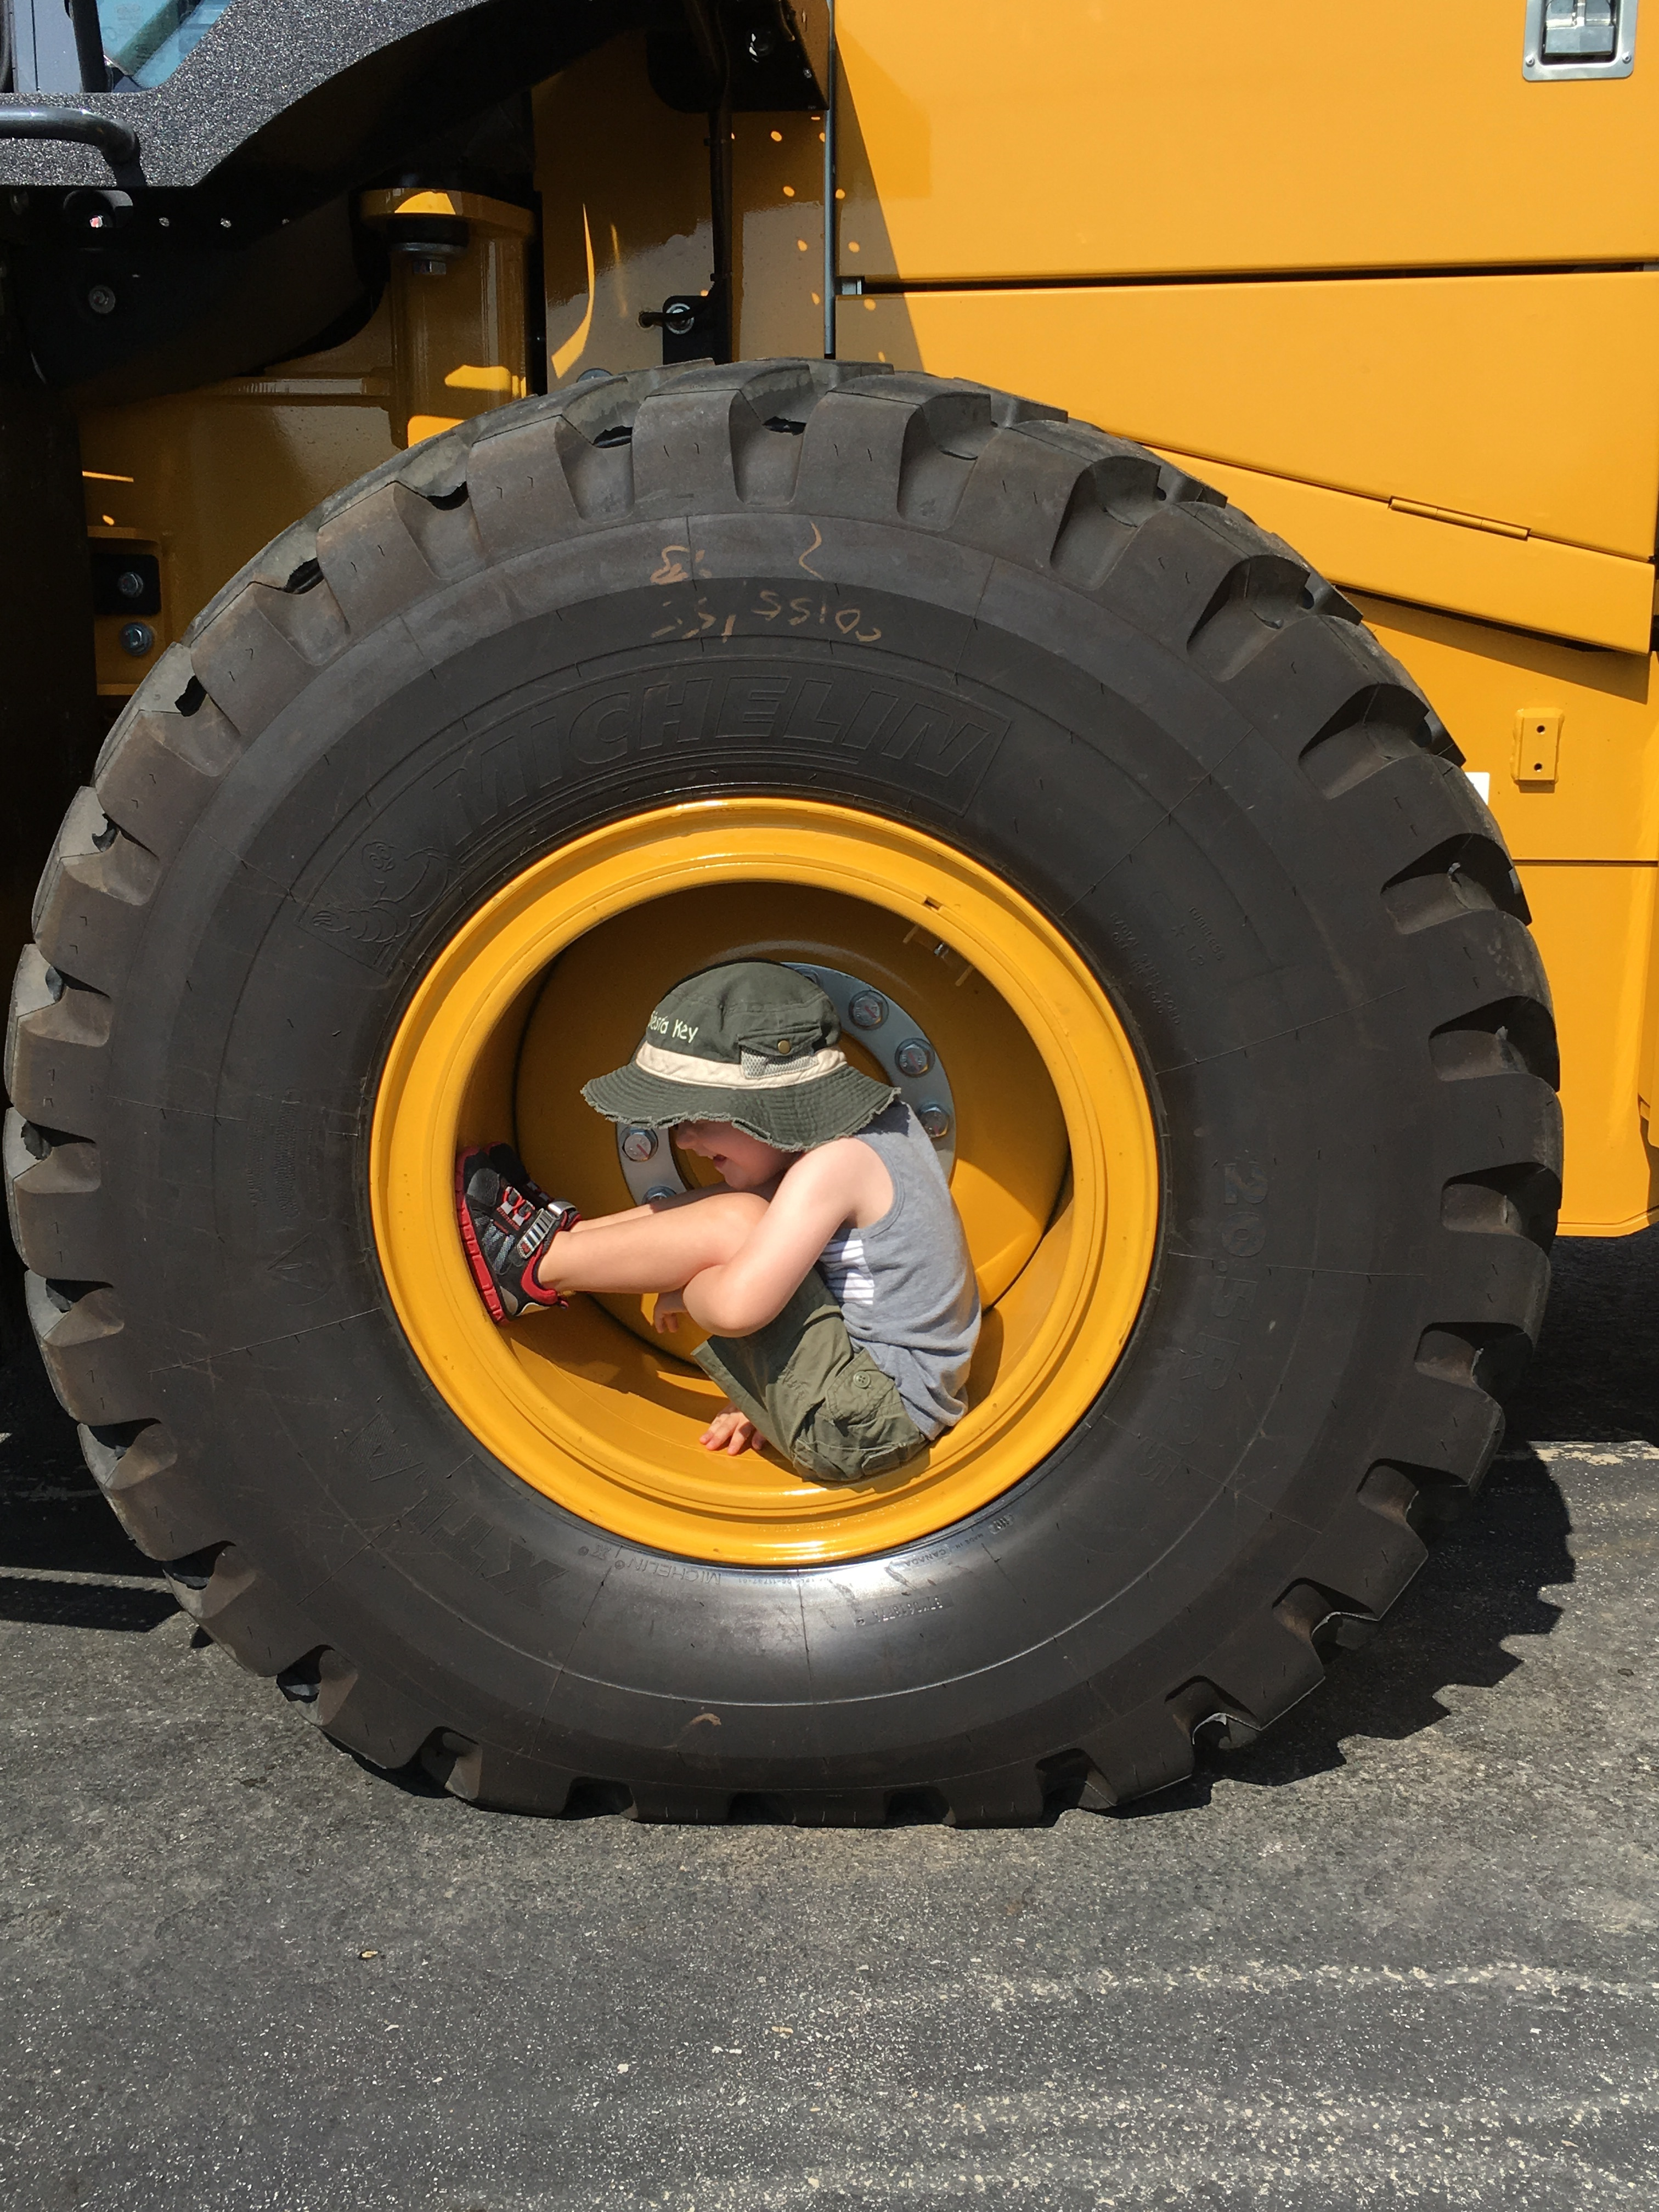 Explore at New Albany Touch-a-Truck